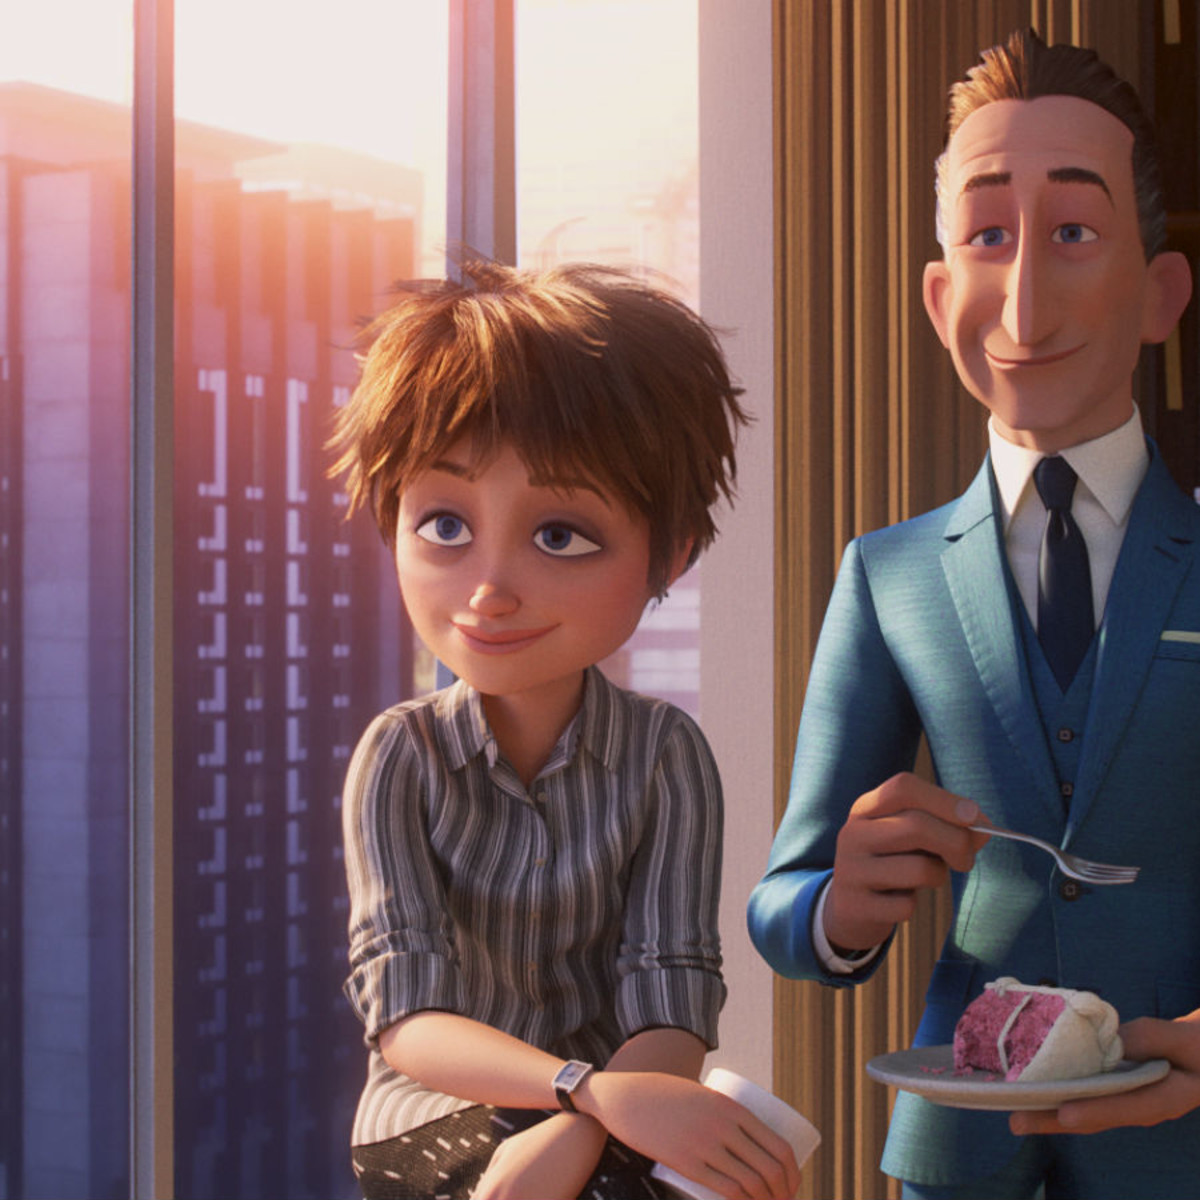 Evelyn and Winston Deavor in Incredibles 2